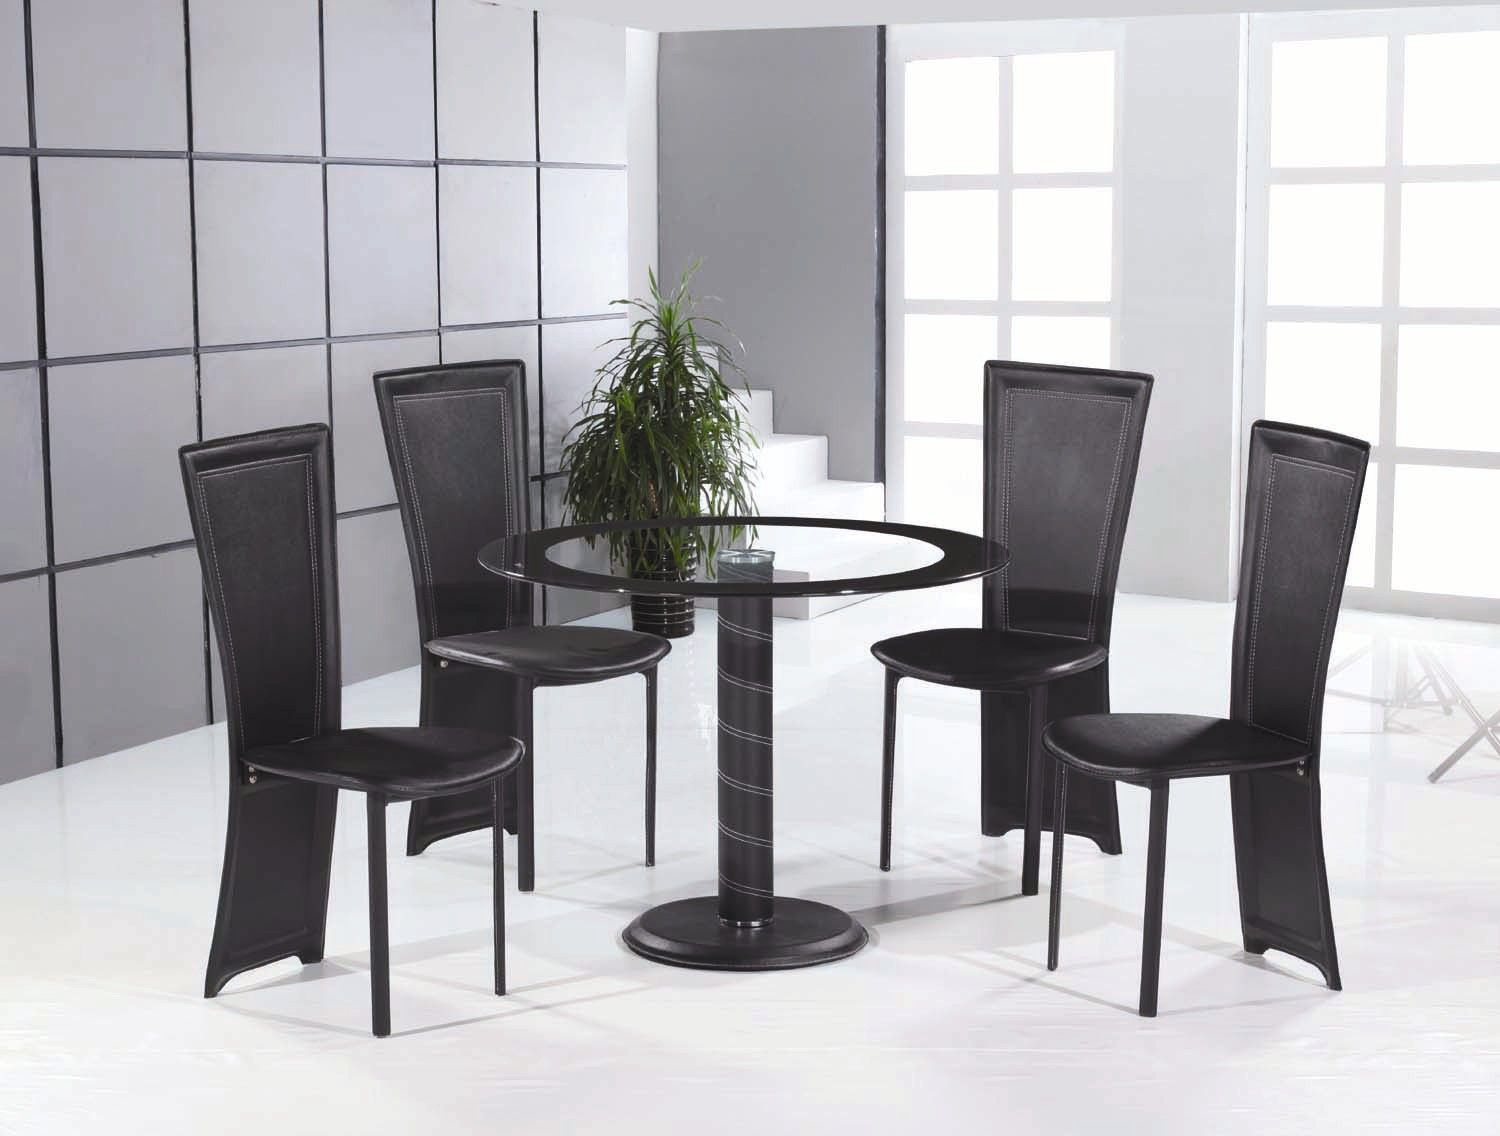 Glass Dining Sets Product Categories Allans Furniture Warehouse Stylish Dining Room Glass Dining Set Dining